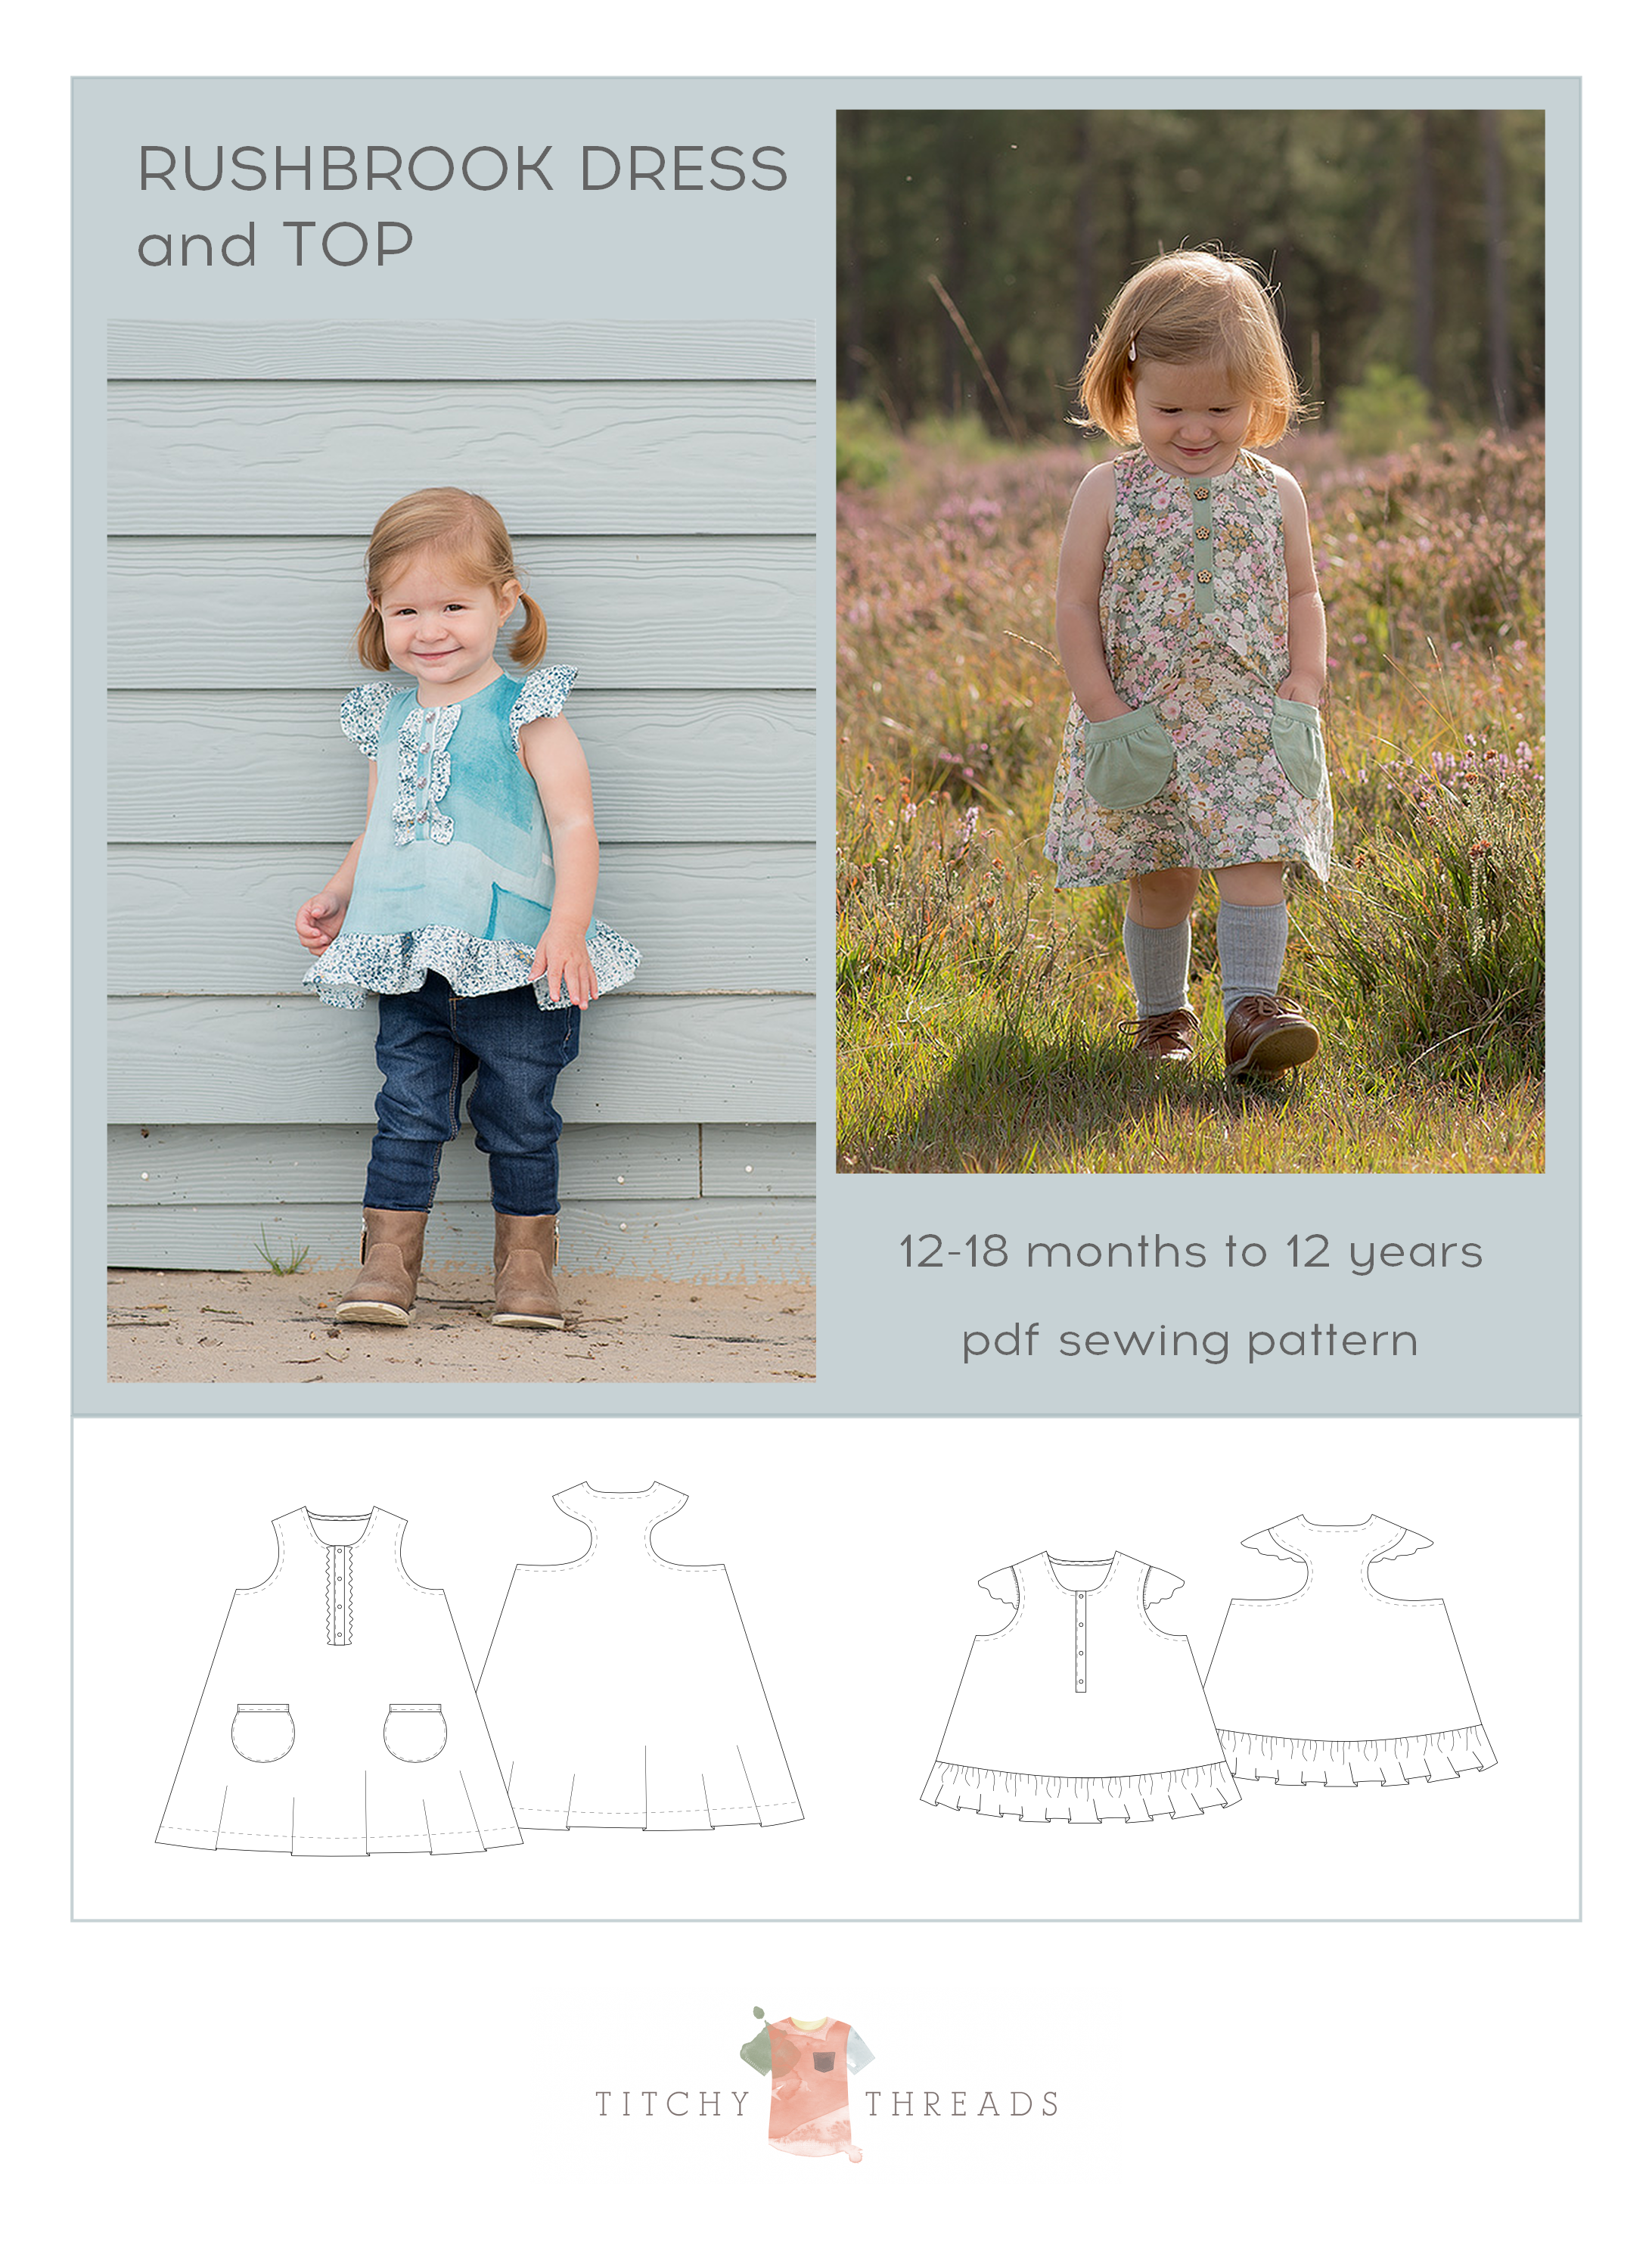 Rushbrook Dress and Top pdf sewing pattern by Titchy Threads